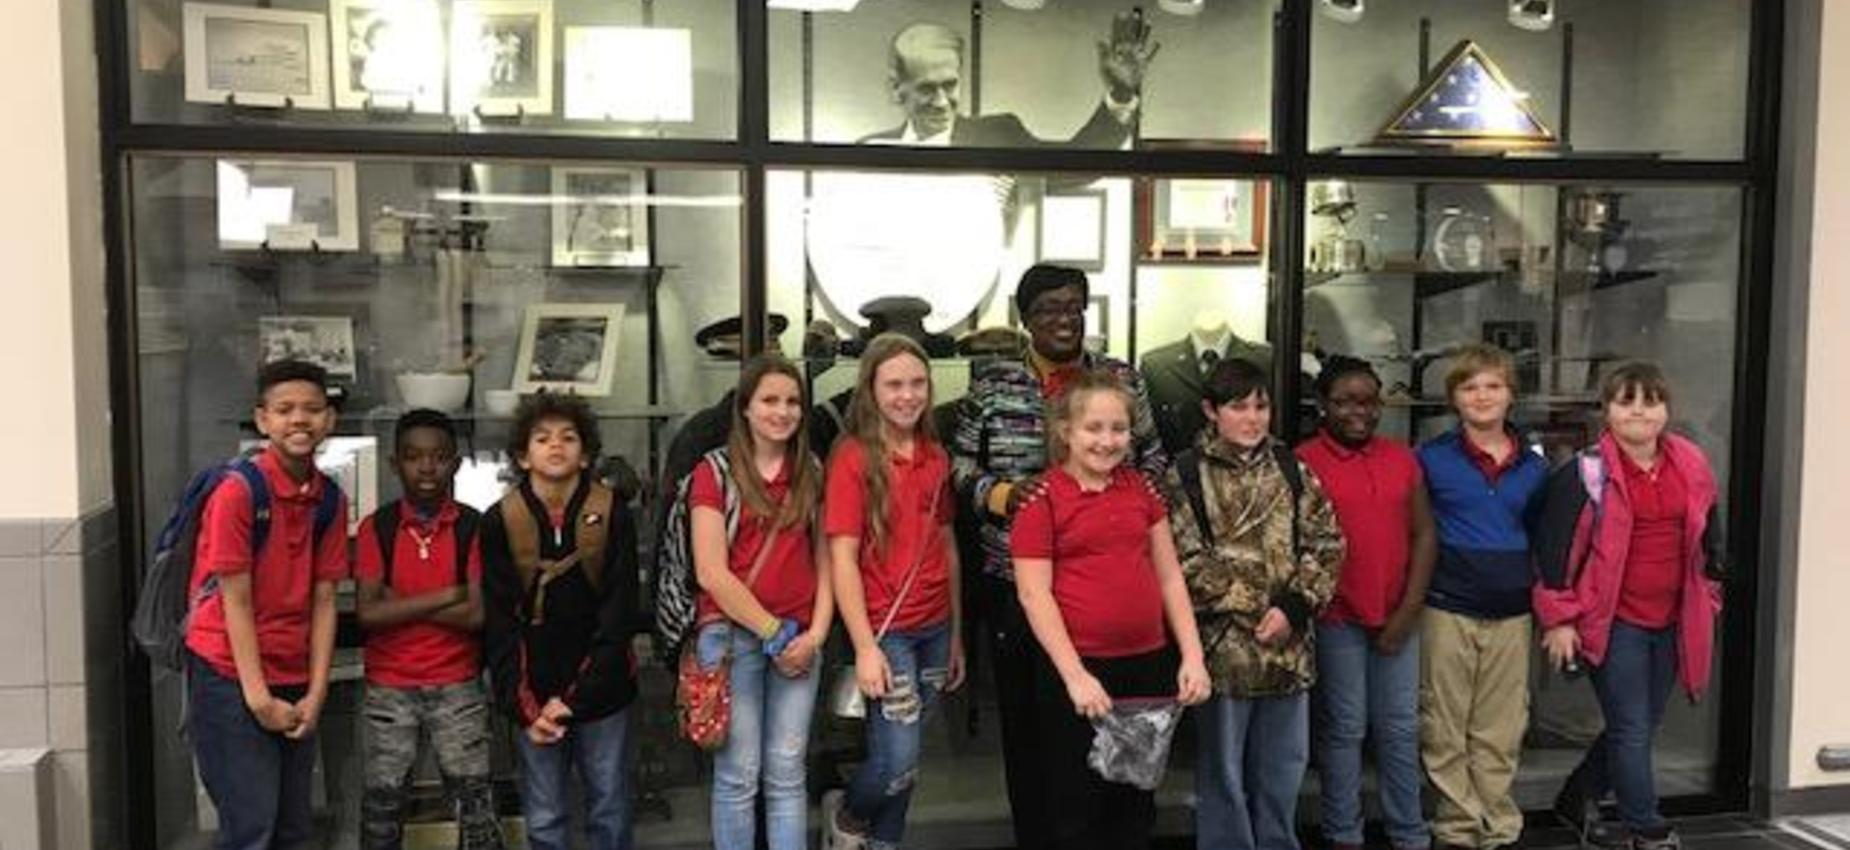 Fourth graders visit the VA Hospital in Jackson, MS